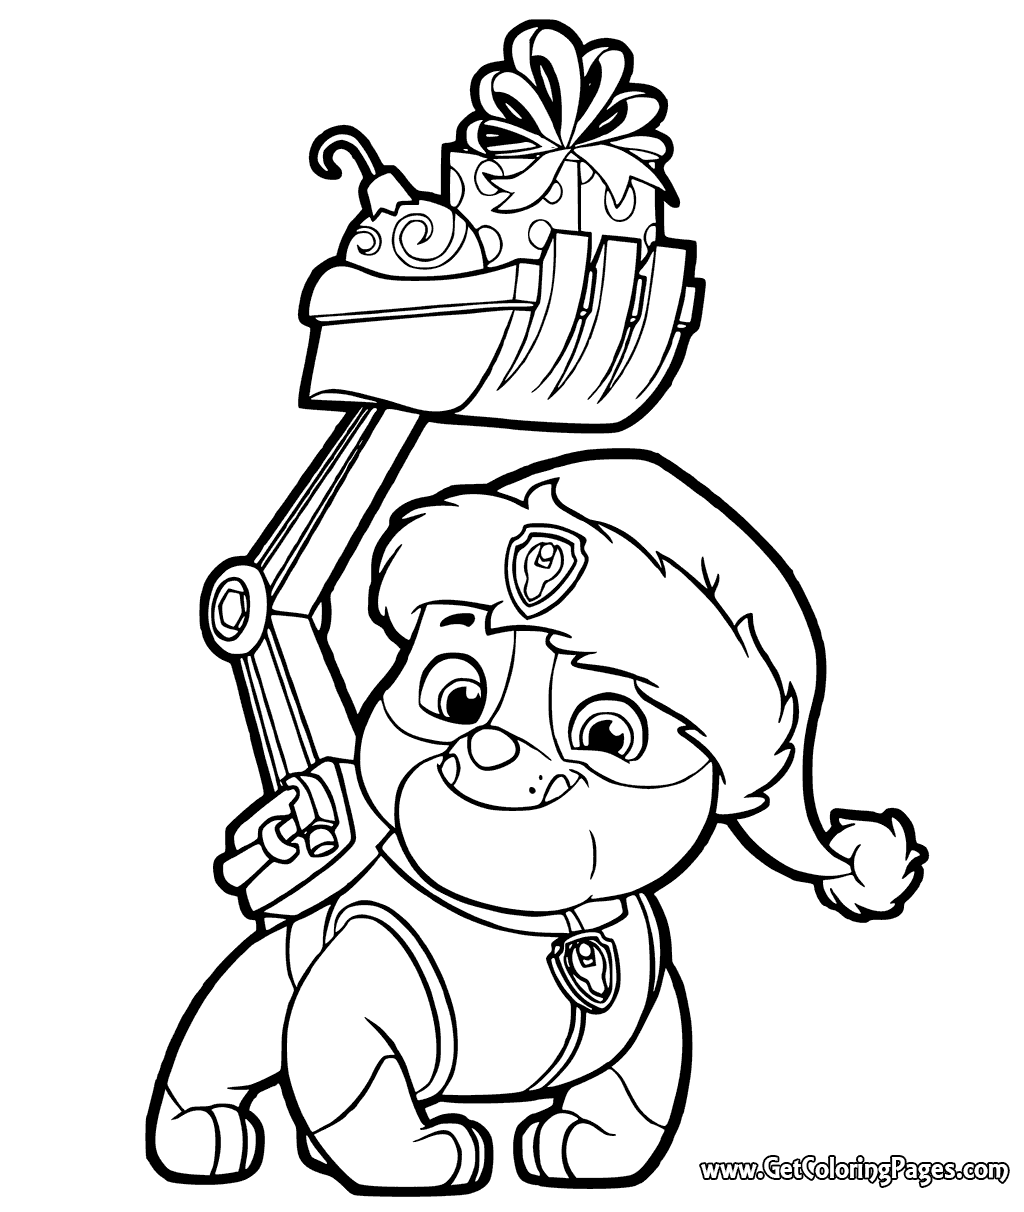 Paw Patrol Christmas Coloring Pages at GetDrawings | Free ...